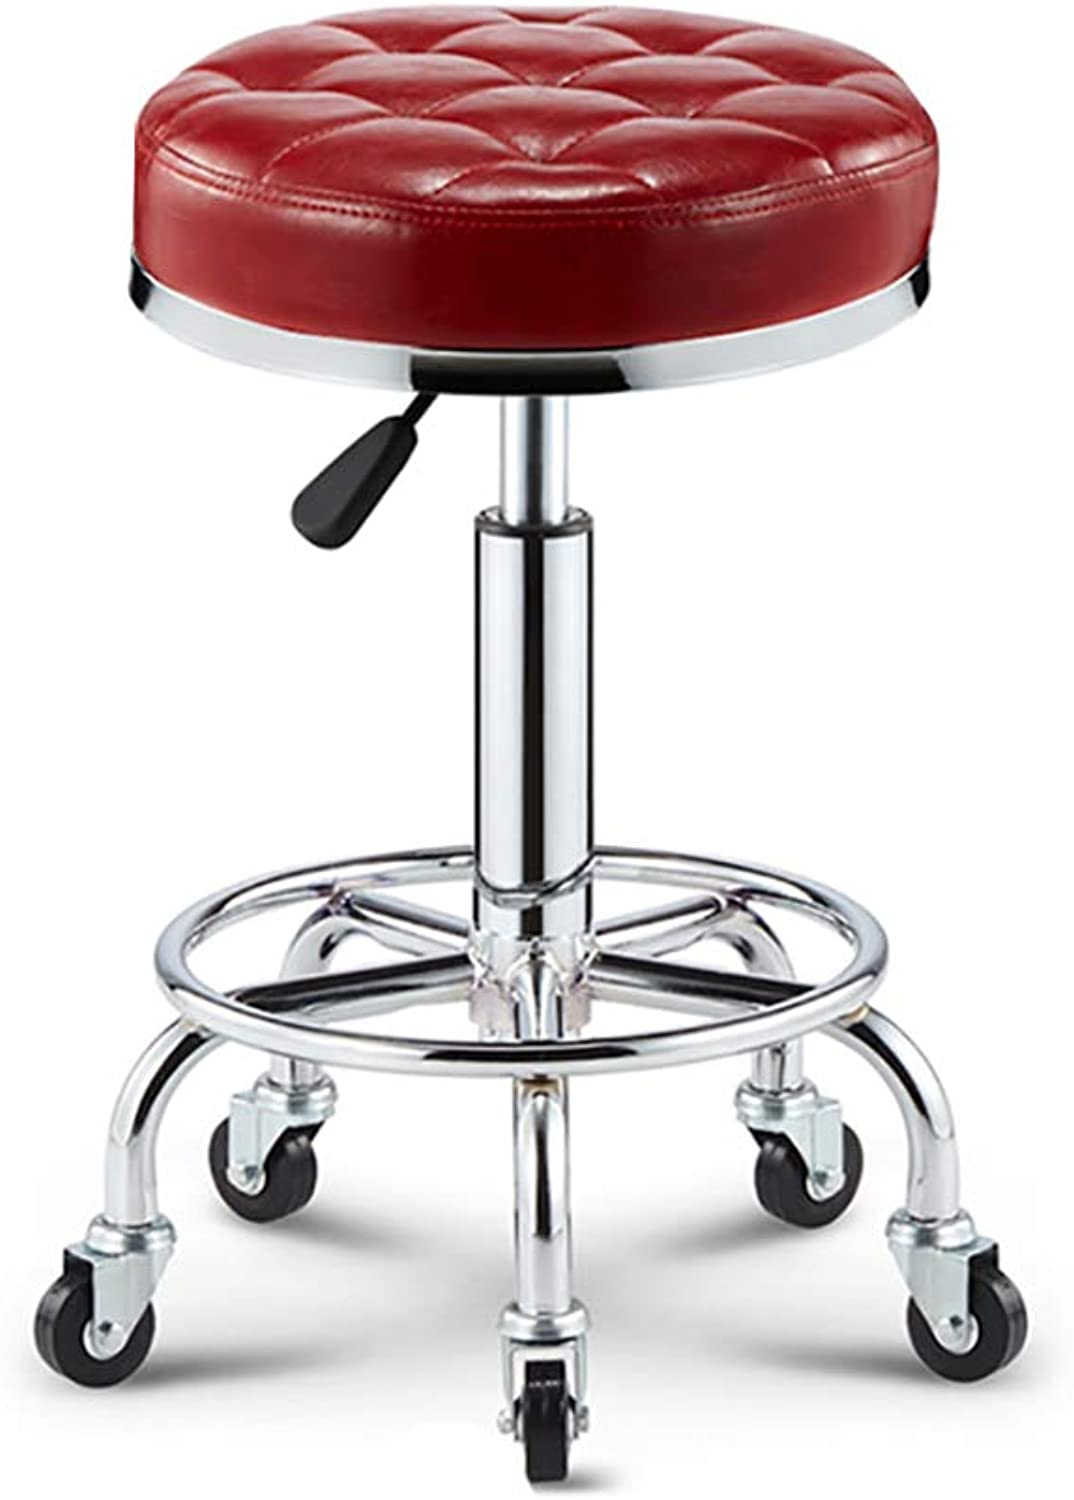 Adjustable Height Chair with Wheels for Work, bar, Dining Table, etc-red